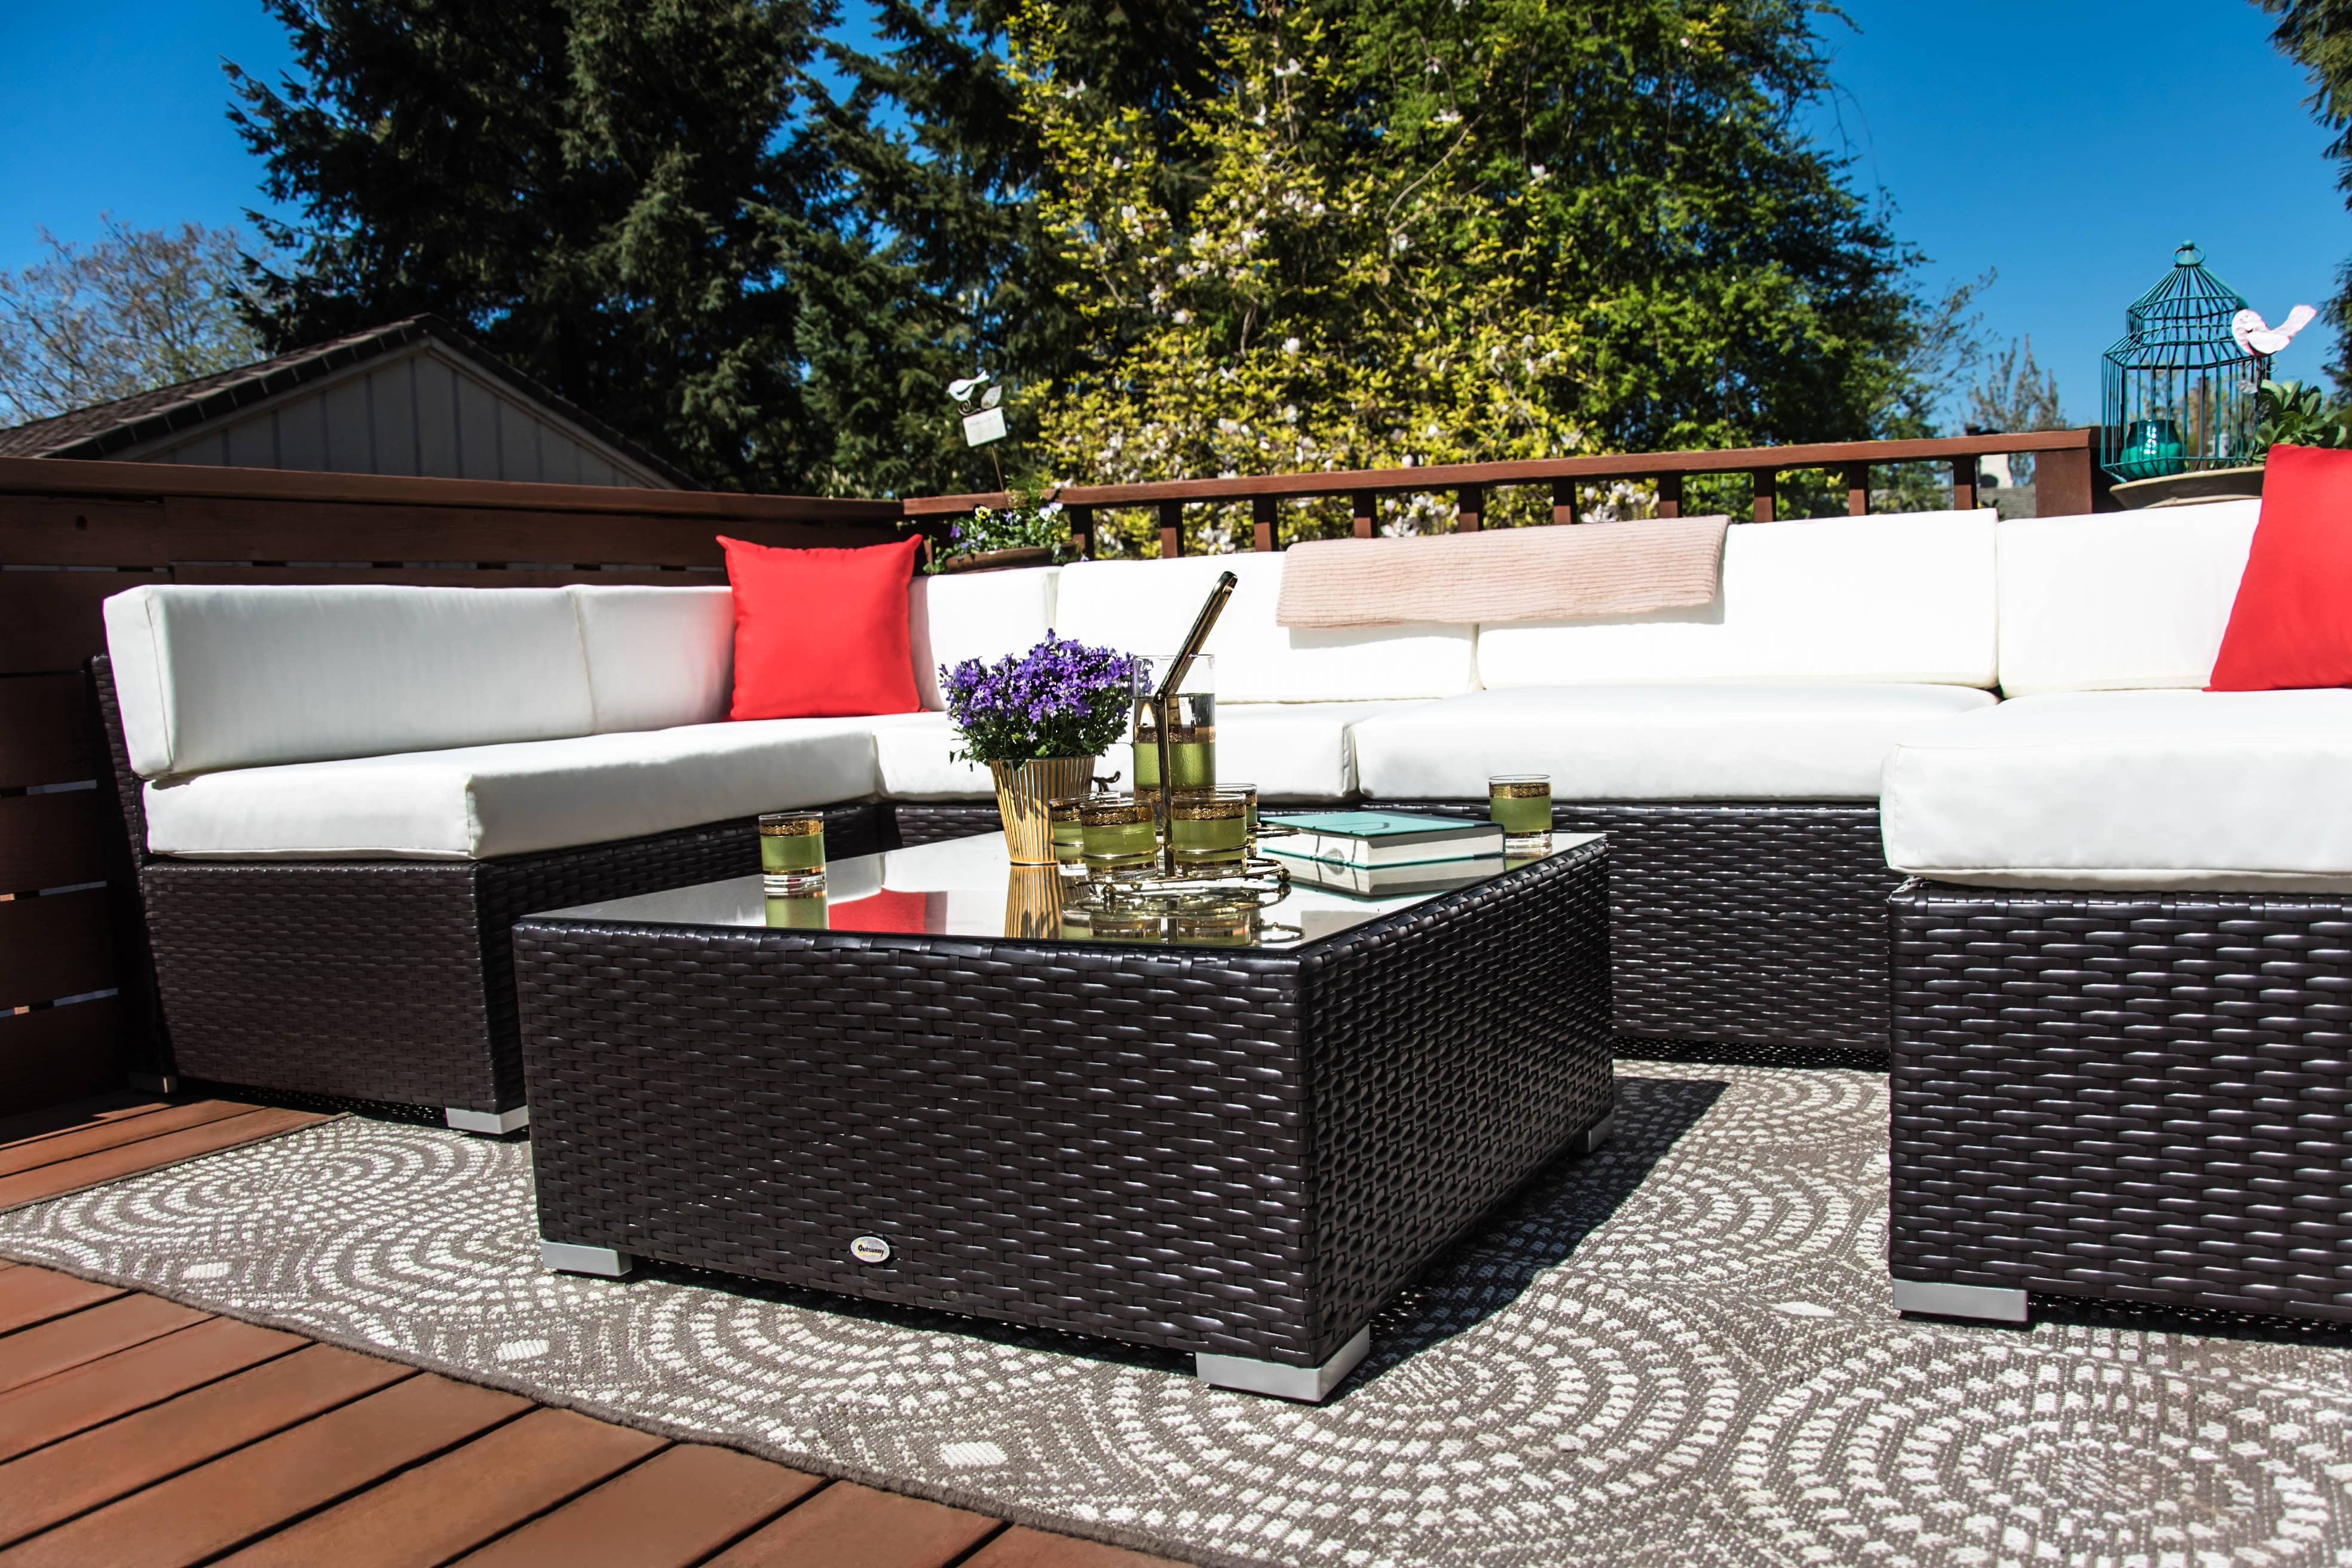 Best ideas about Outsunny Patio Furniture . Save or Pin Outsunny 7 Piece Outdoor Patio PE Rattan Wicker Sofa Now.